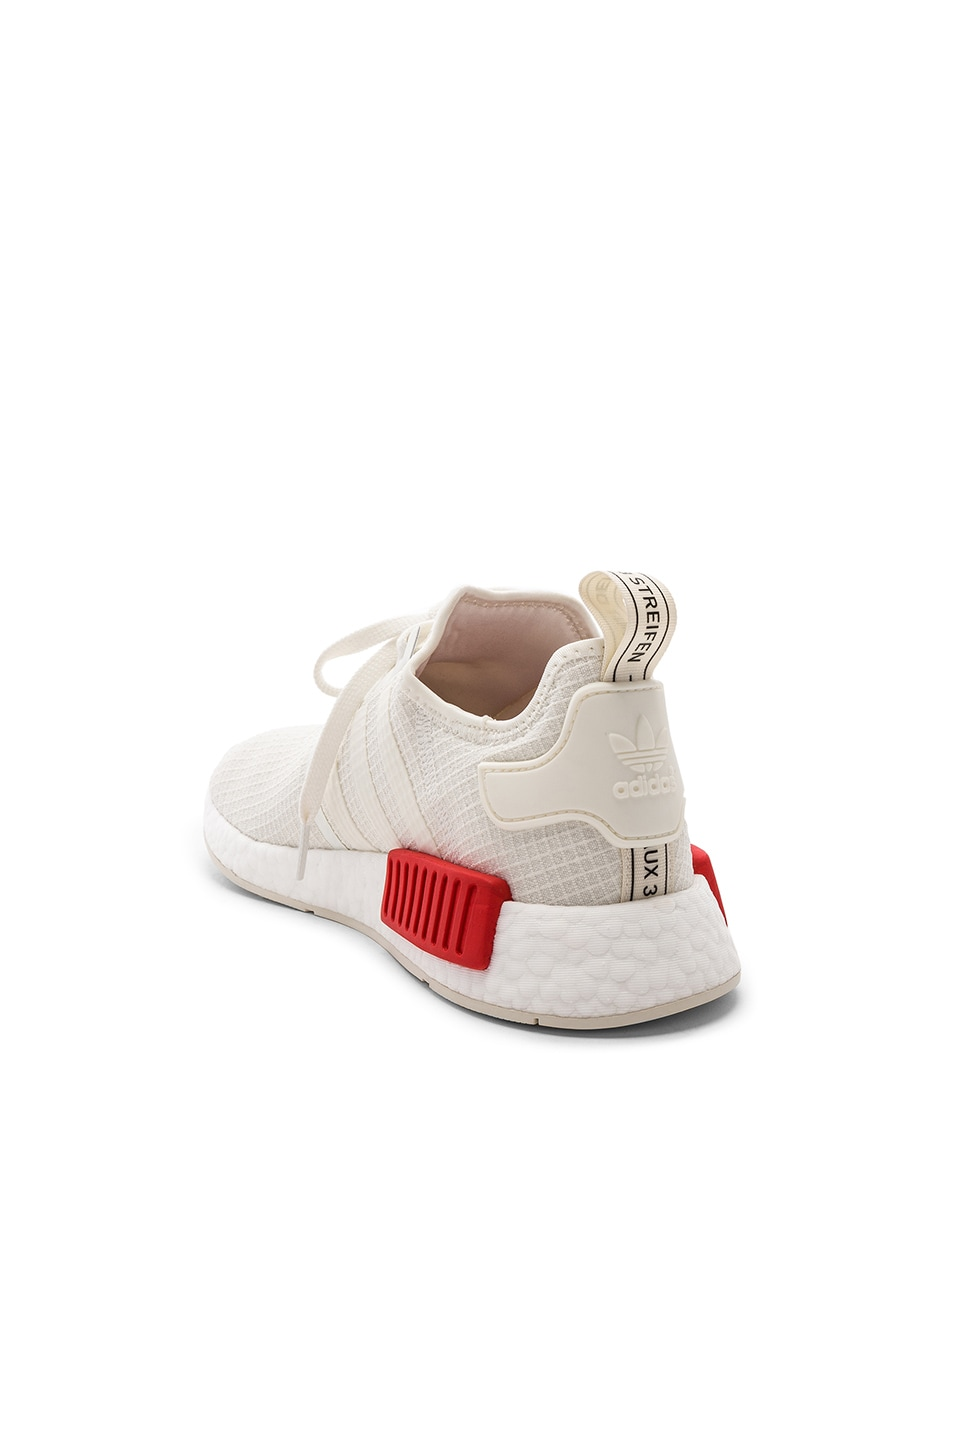 on sale 53e2d 342d3 high-quality adidas Originals NMD R1 Off White & Off White ...